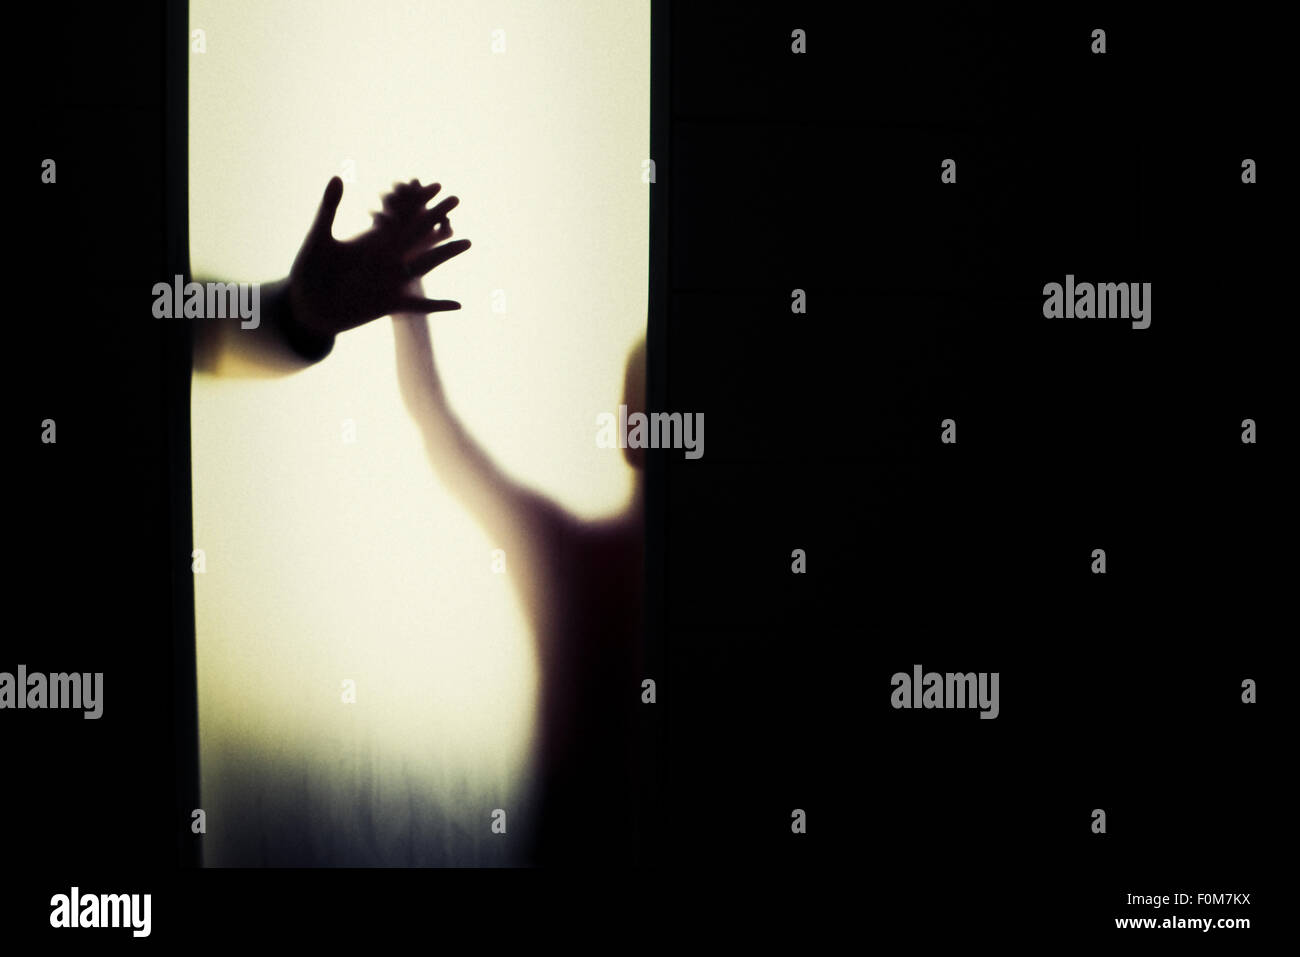 Silhouette of child and adult holding hands. Conceptual image of trust, connection and bonding. Stock Photo